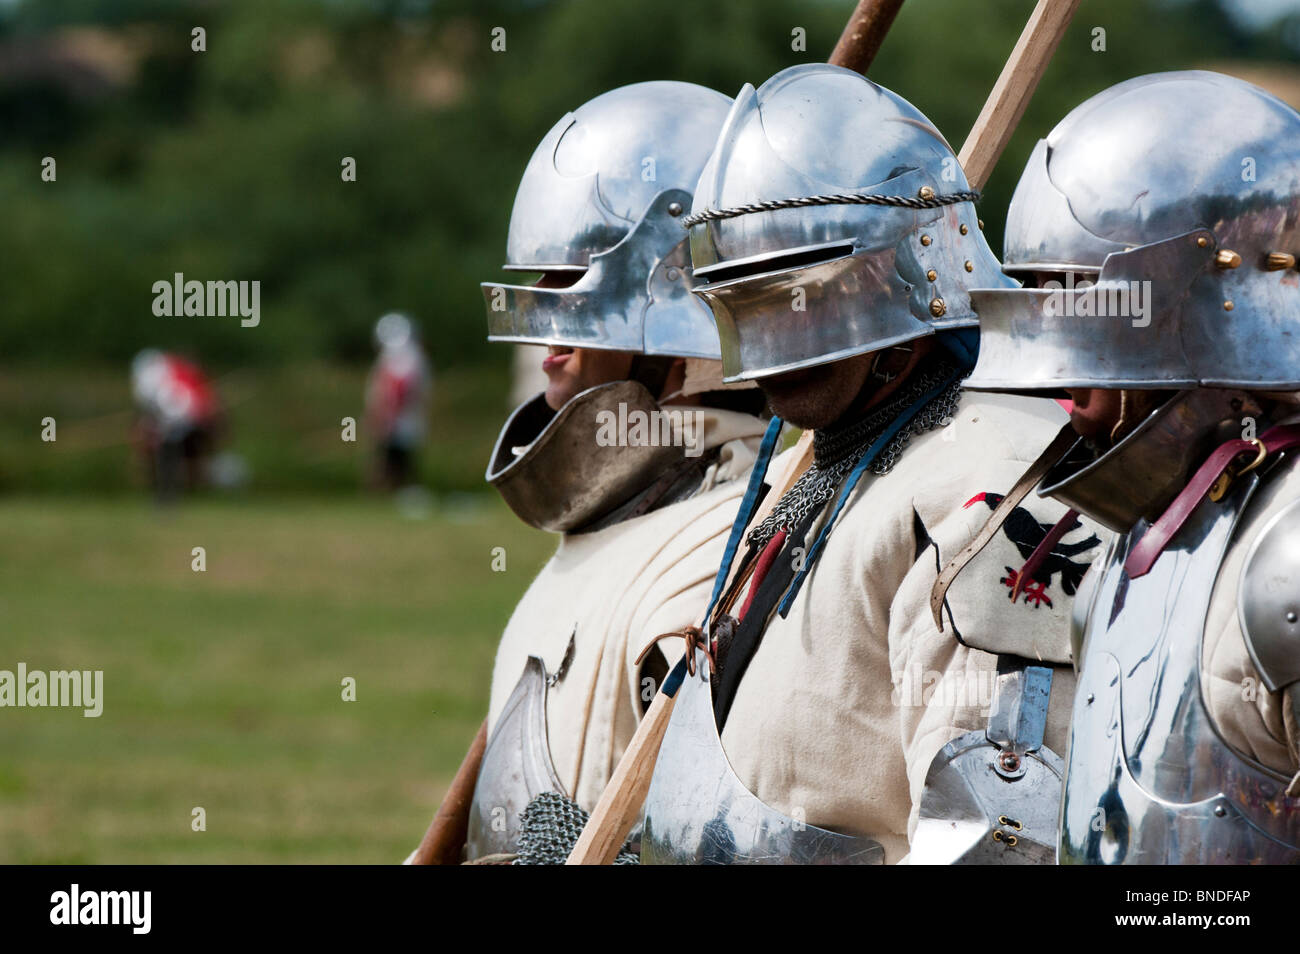 Knights in armor marching on the battlefield at the re-enactment of the battle of Tewkesbury. Medieval festival - Stock Image